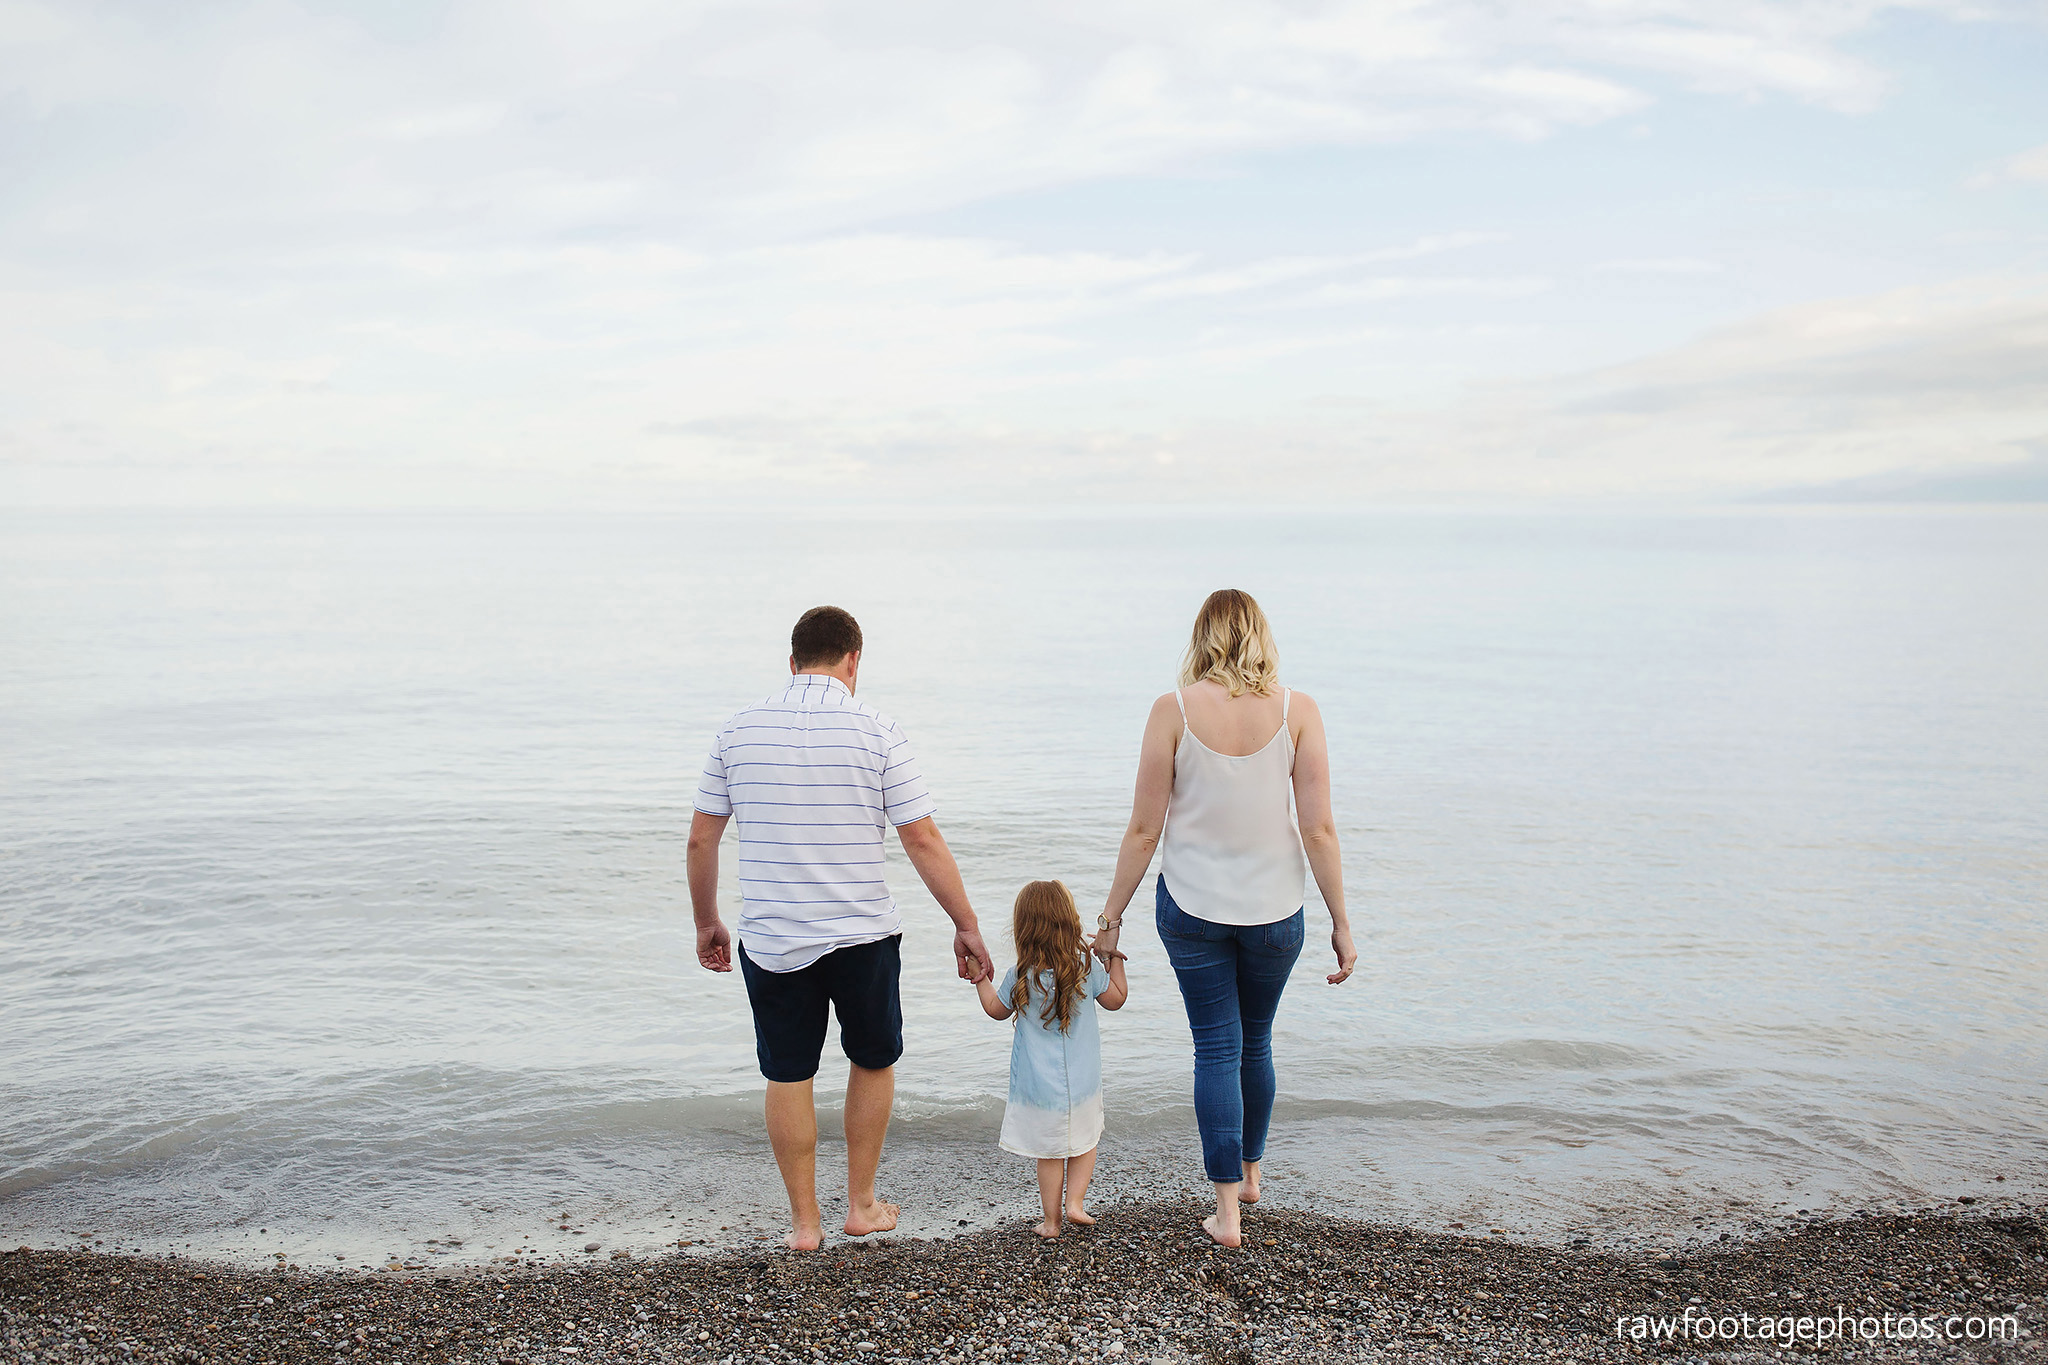 london_ontario_family_photographer-beach_minis-port_stanley_beach-raw_footage_photography008.jpg